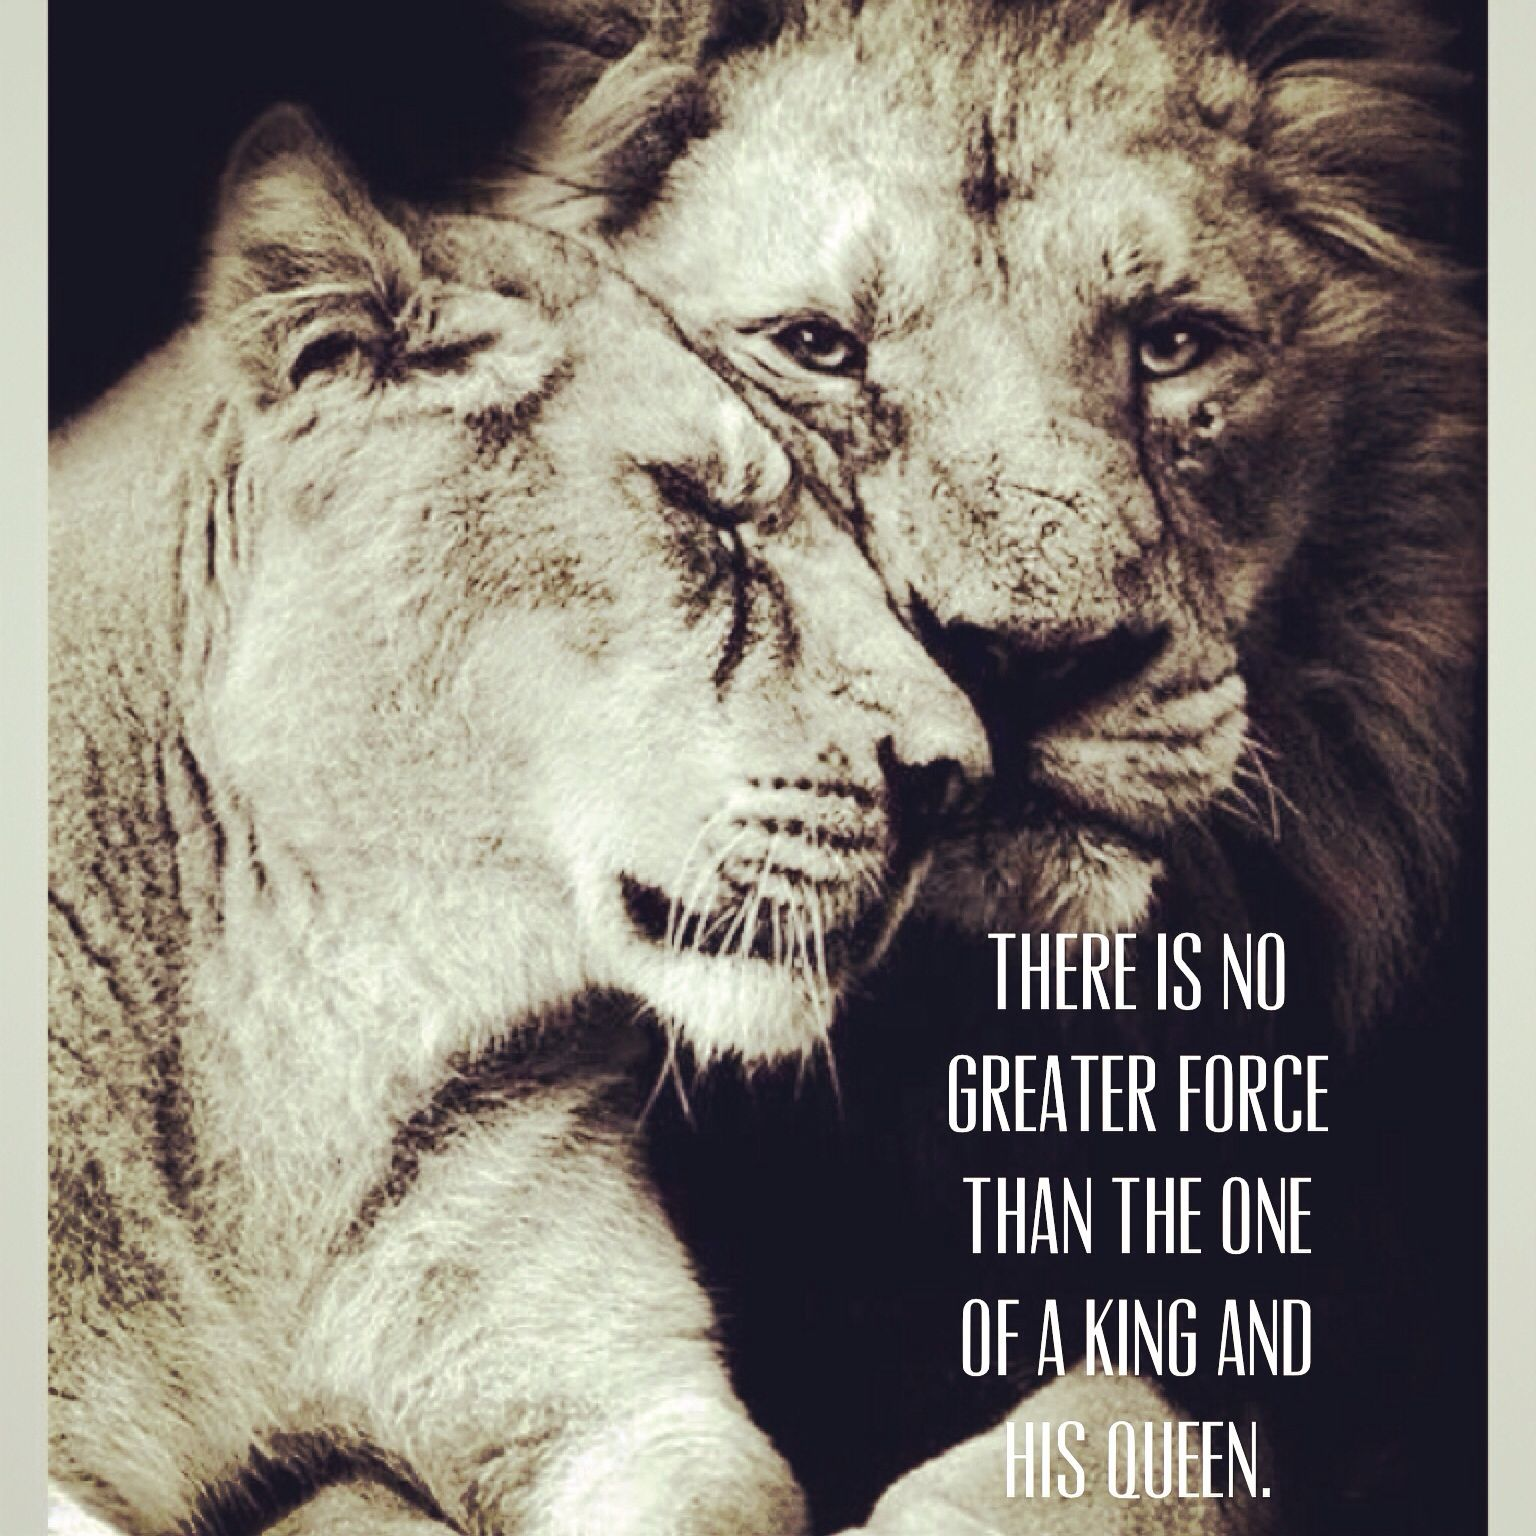 Lion King Love Quotes: King & Queen. #lion #lioness #love #king #queen